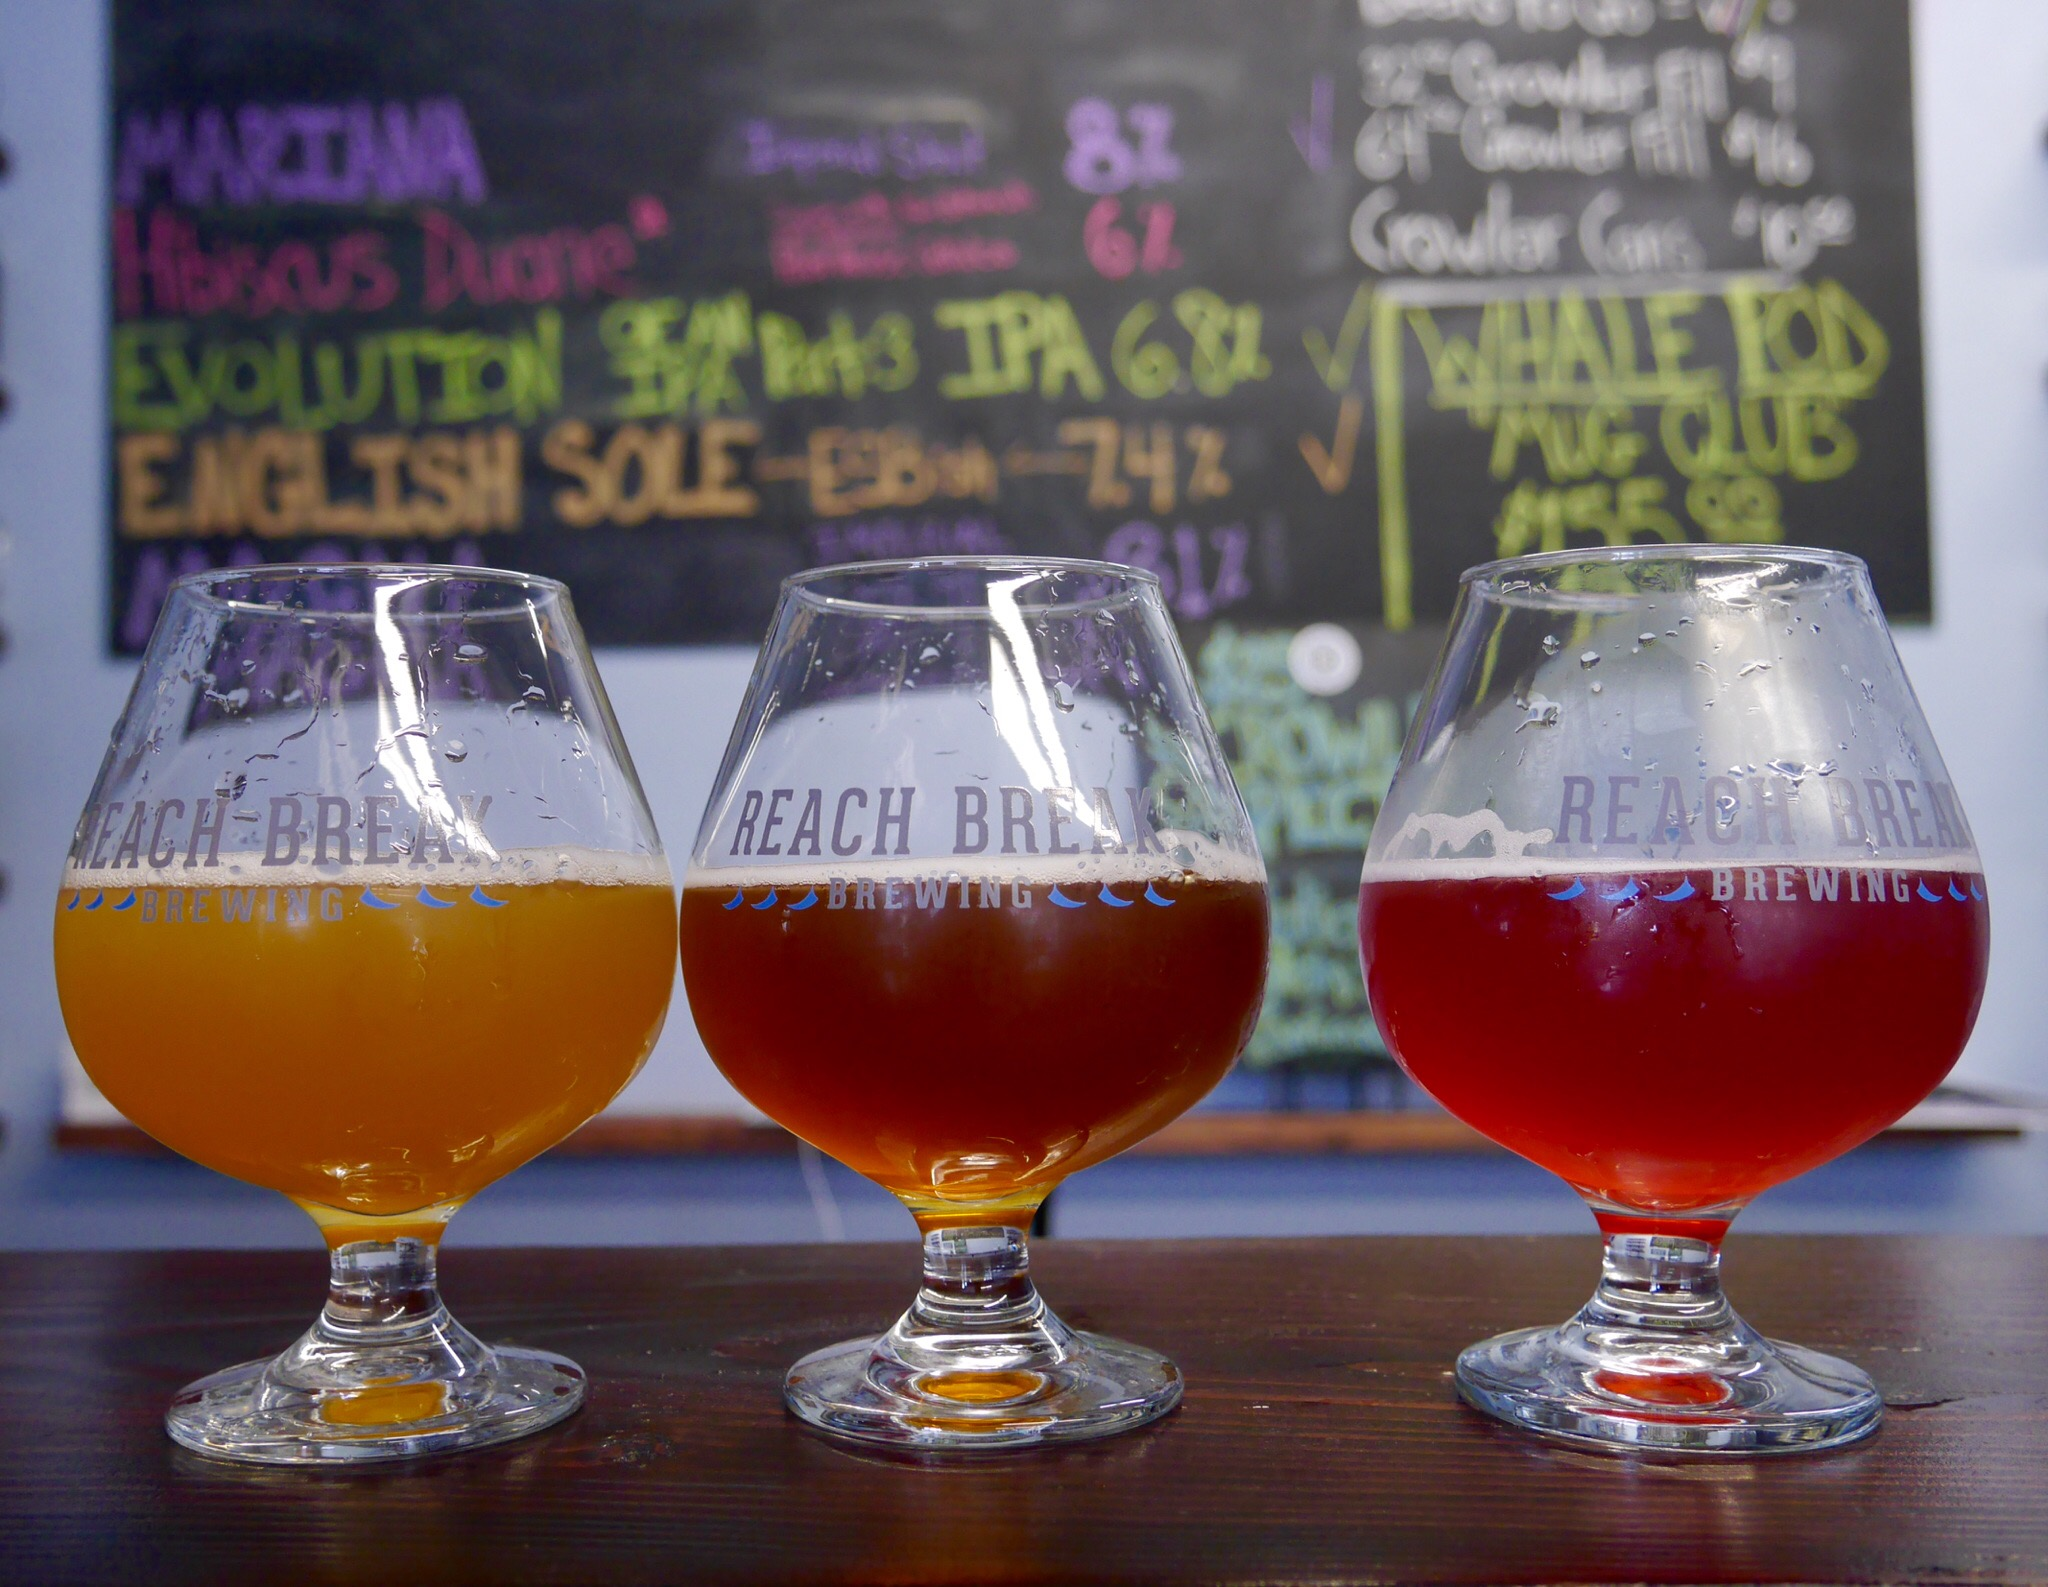 The impressive beers from Reach Break Brewing in Astoria. (photo by Cat Stelzer)